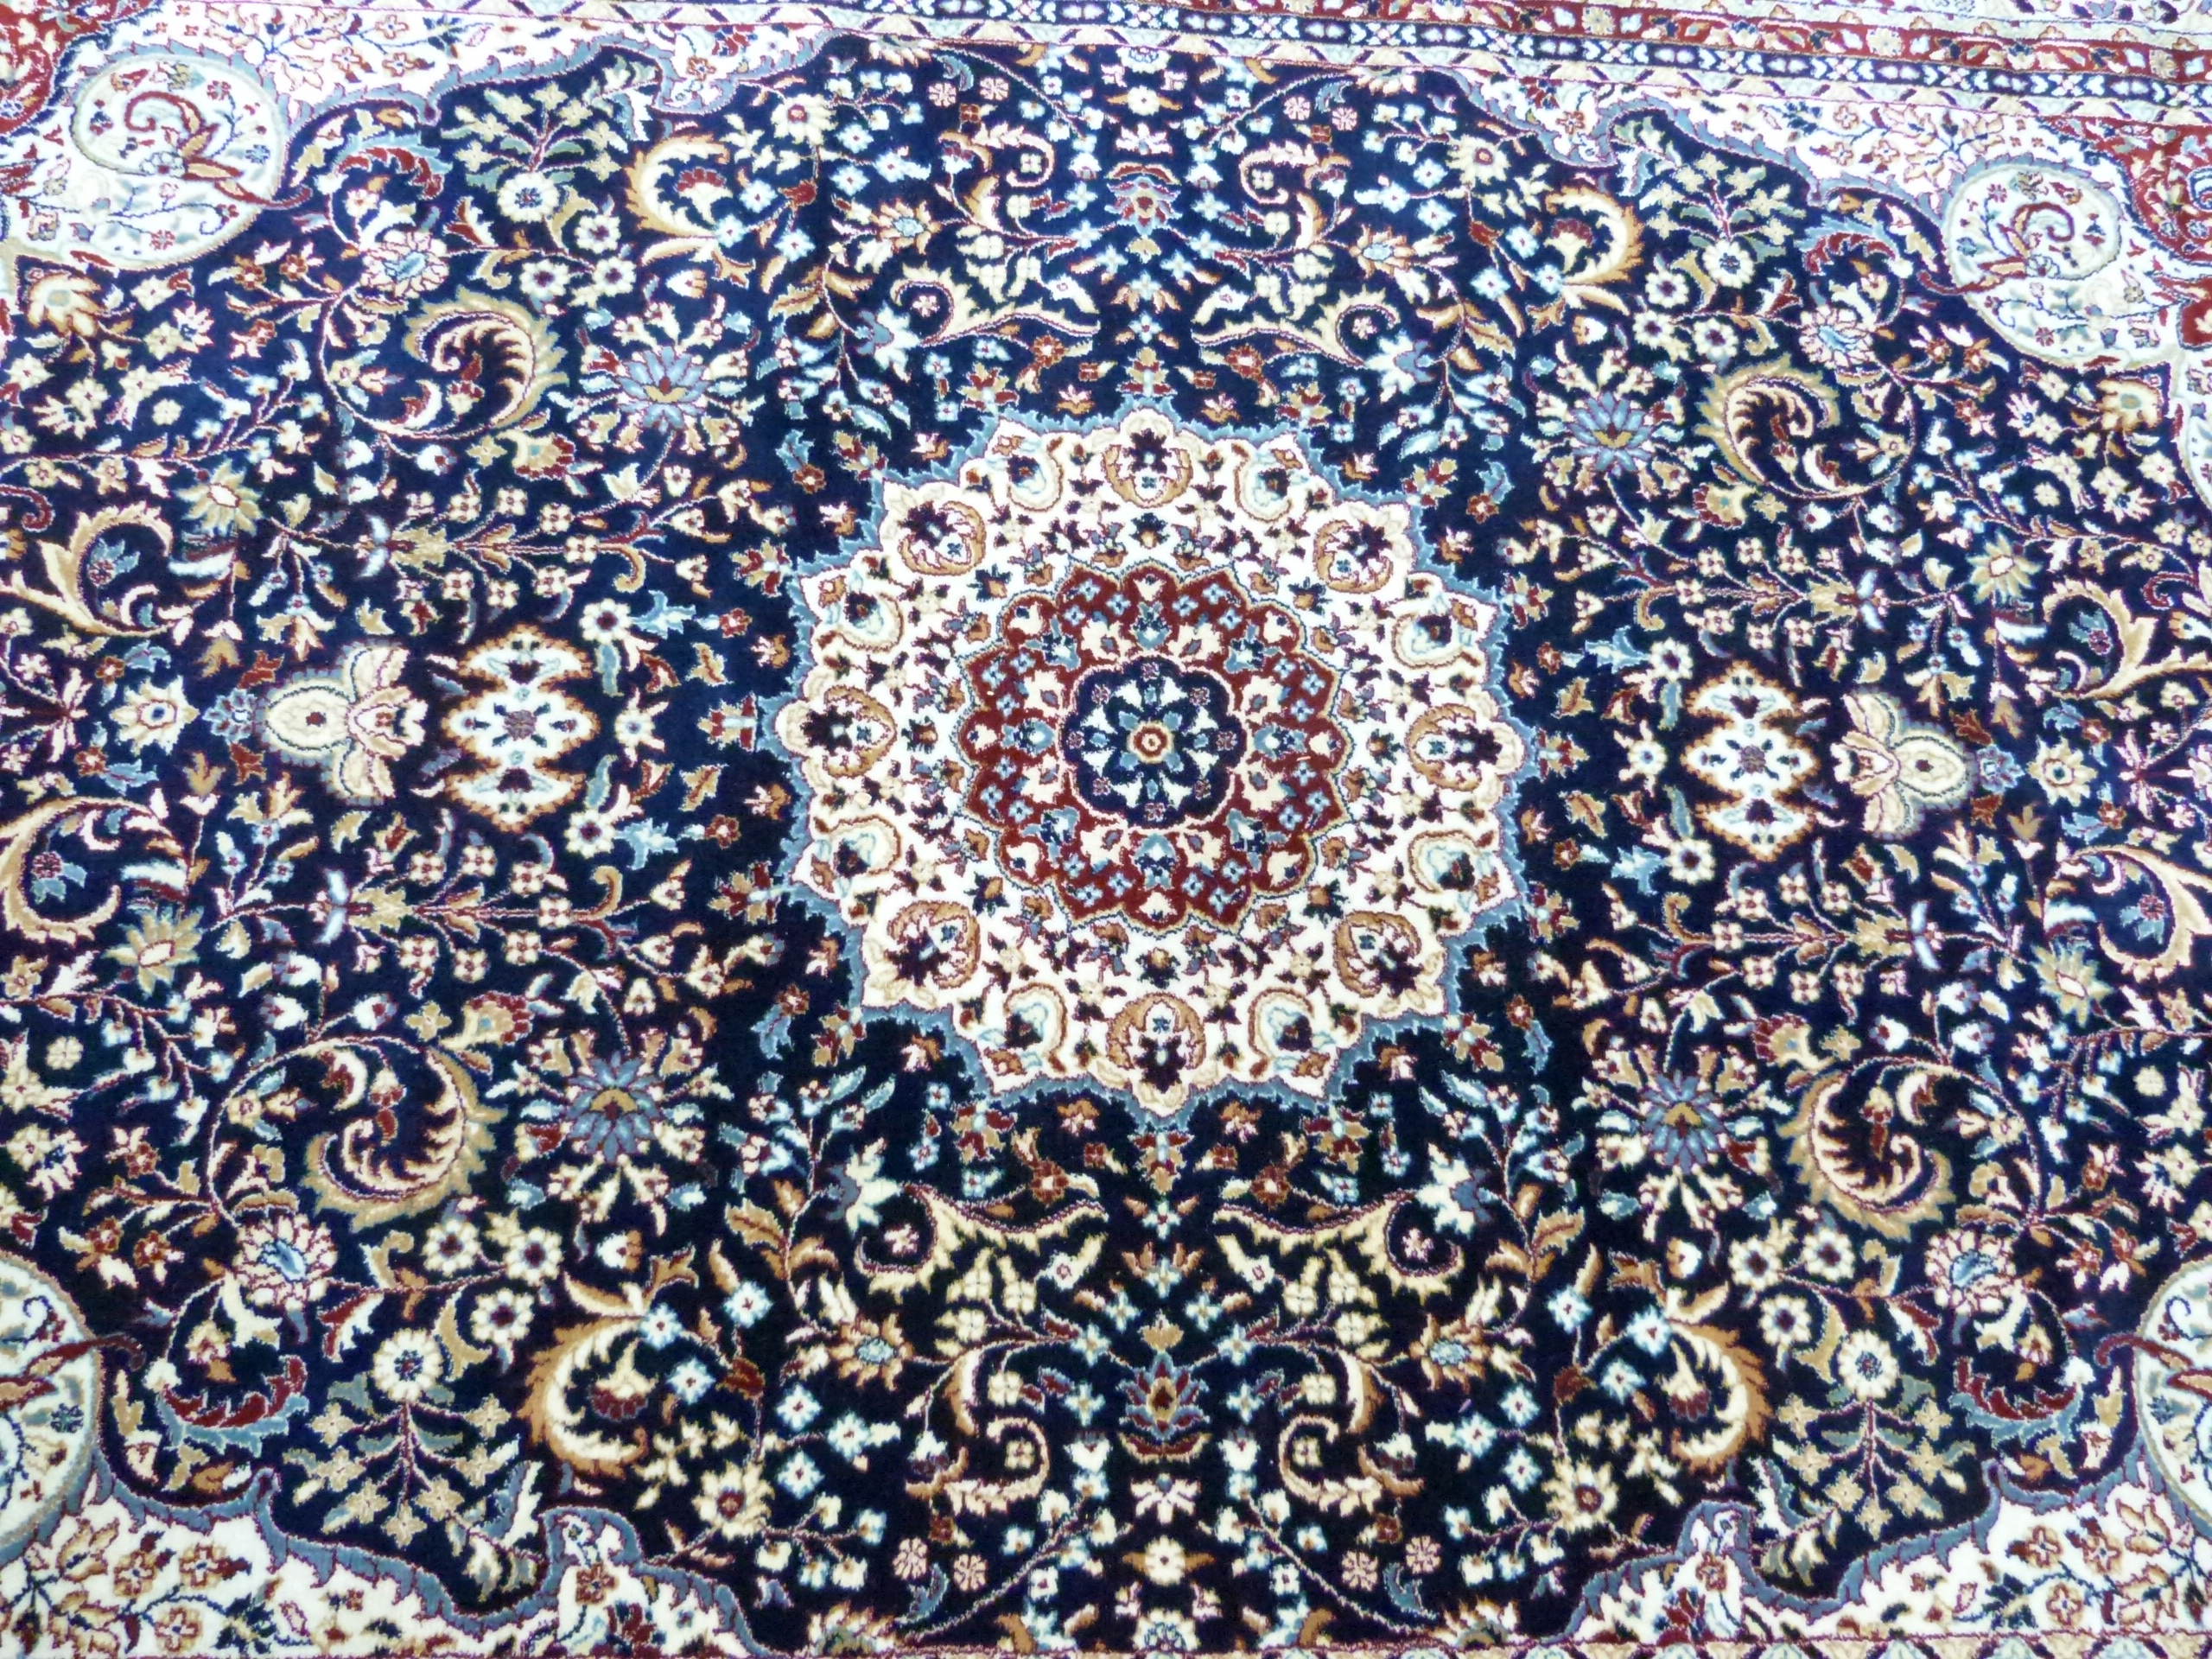 Rich blue ground full pile Turkish Carpet, with floral medallion design 320cm x 200cm approximately - Image 4 of 8